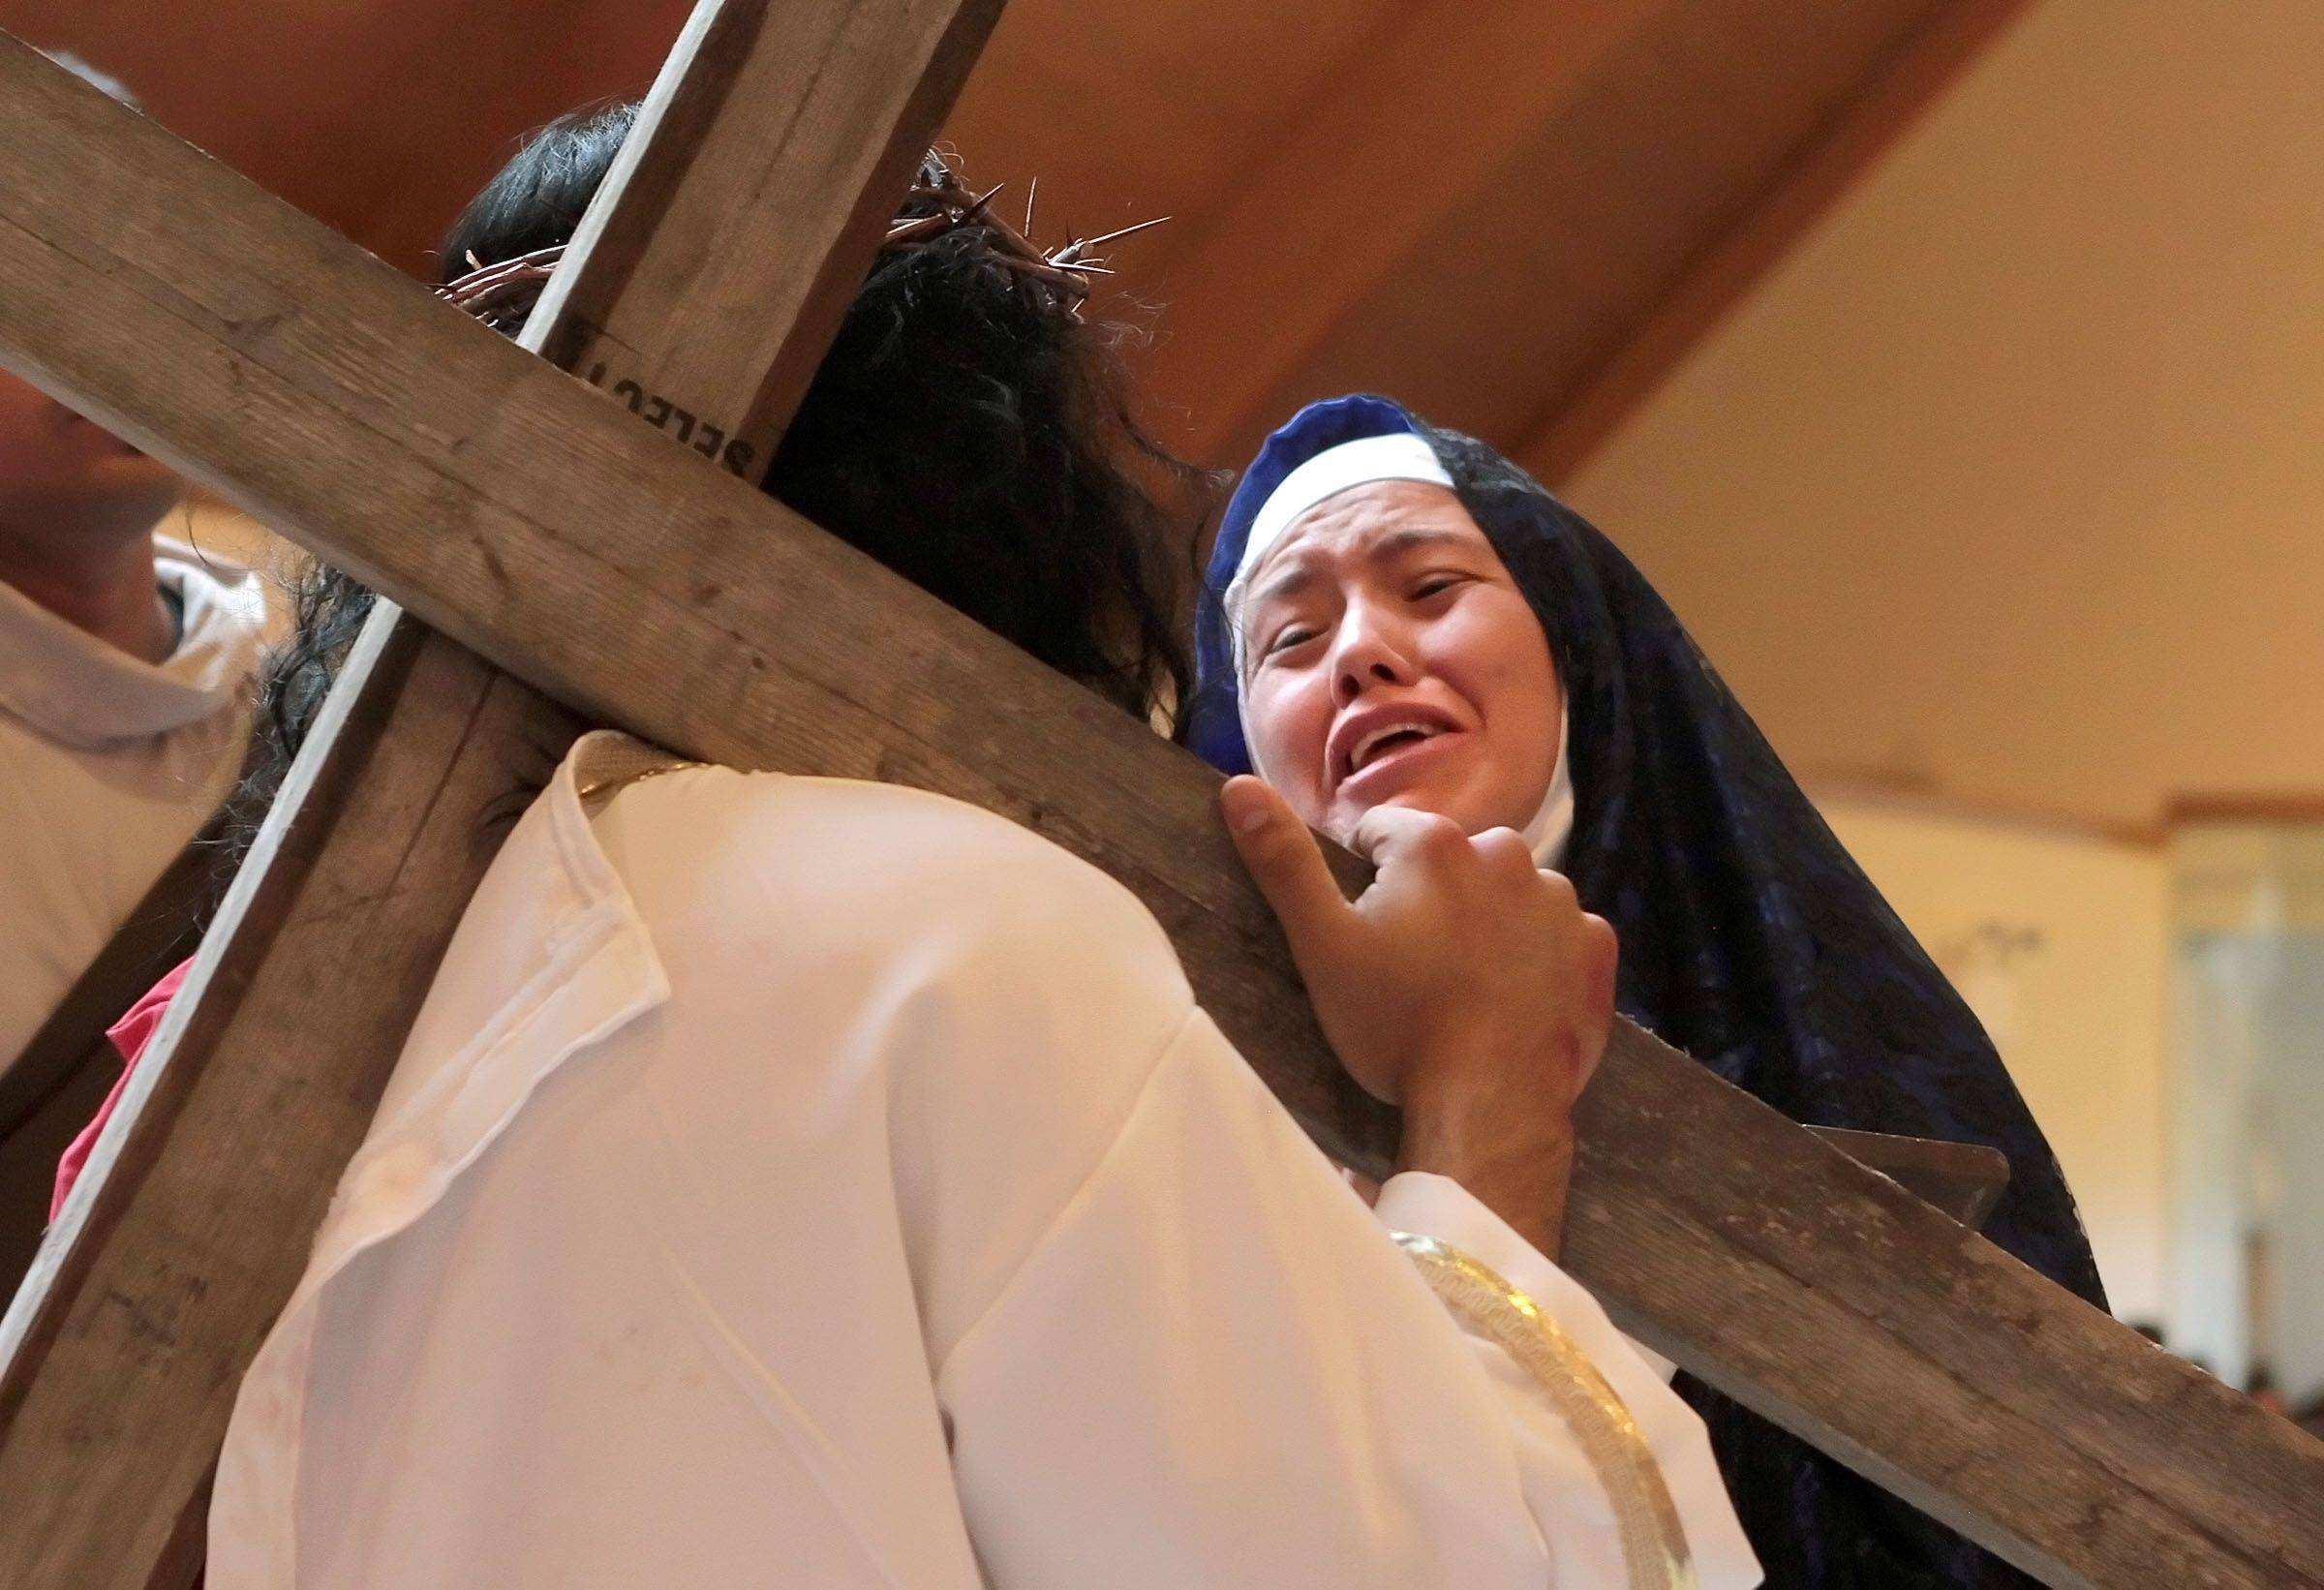 21 year old Andres Colon plays the roll of Jesus and 30 year old Elizabeth Rivera plays the roll of Mary, both of Waukegan, as the parishioners of Most Blessed Trinity Parish in Waukegan held a Living Stations of the Cross for Good Friday.